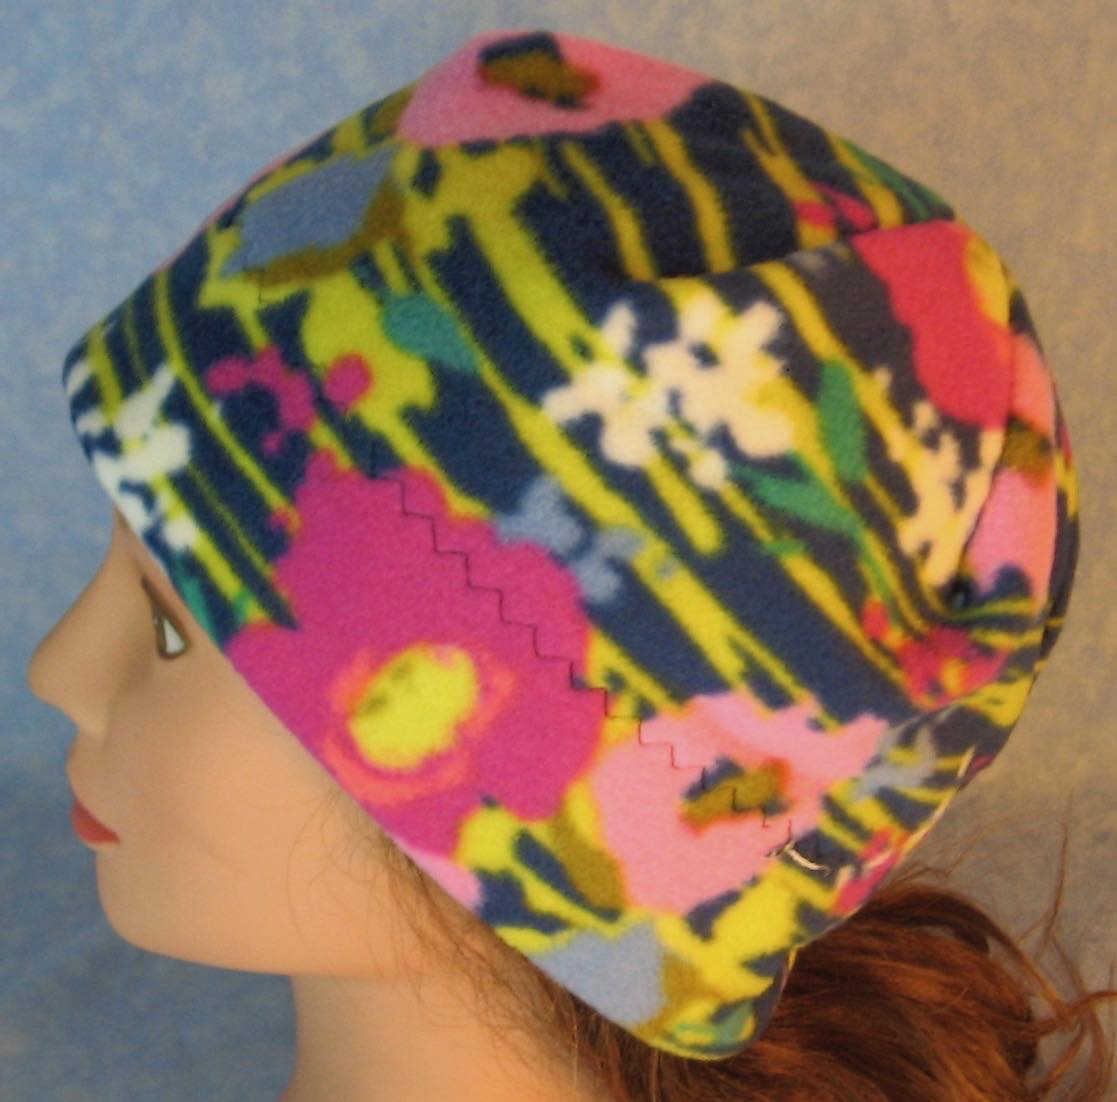 Beanie Band Cap in Pink Flowers with Yellow Lines on Navy-Adult S